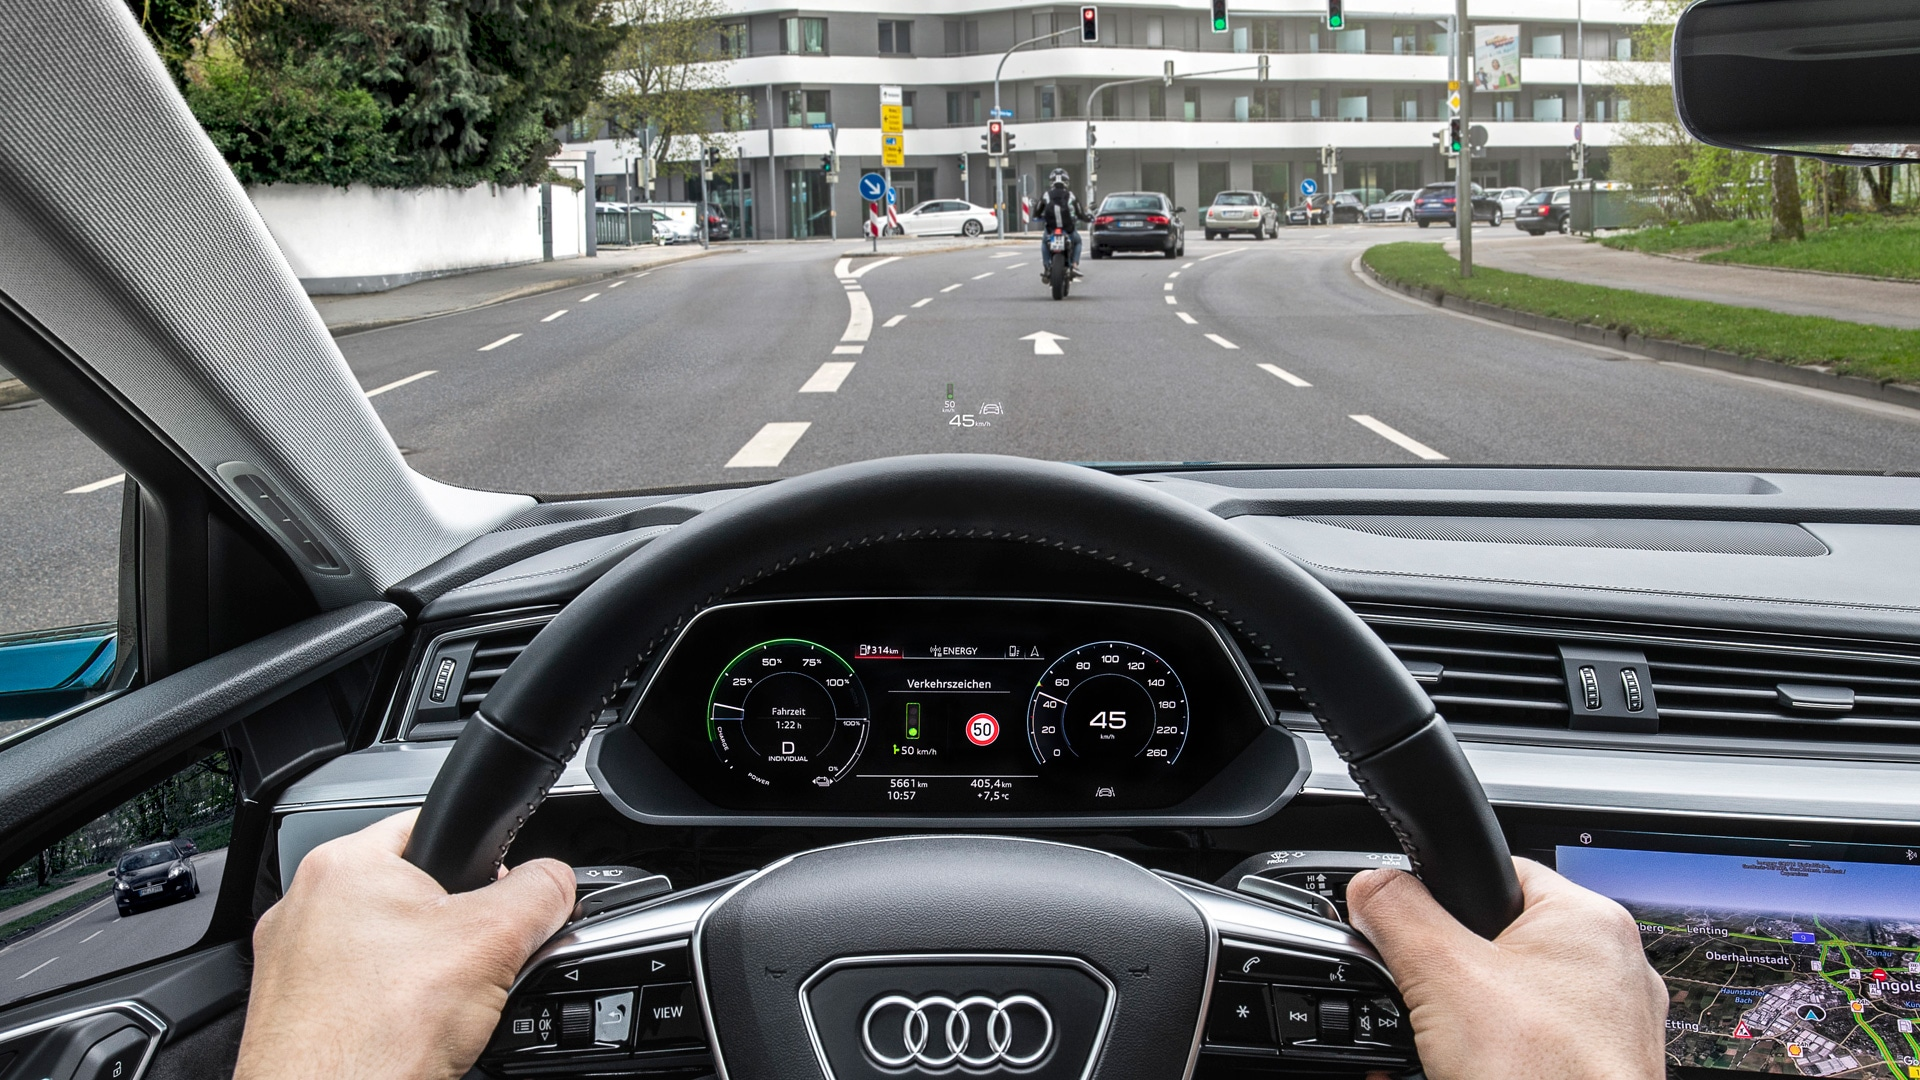 Intelligent cockpit: Audi drivers see what speed is required to reach the next traffic light on green.